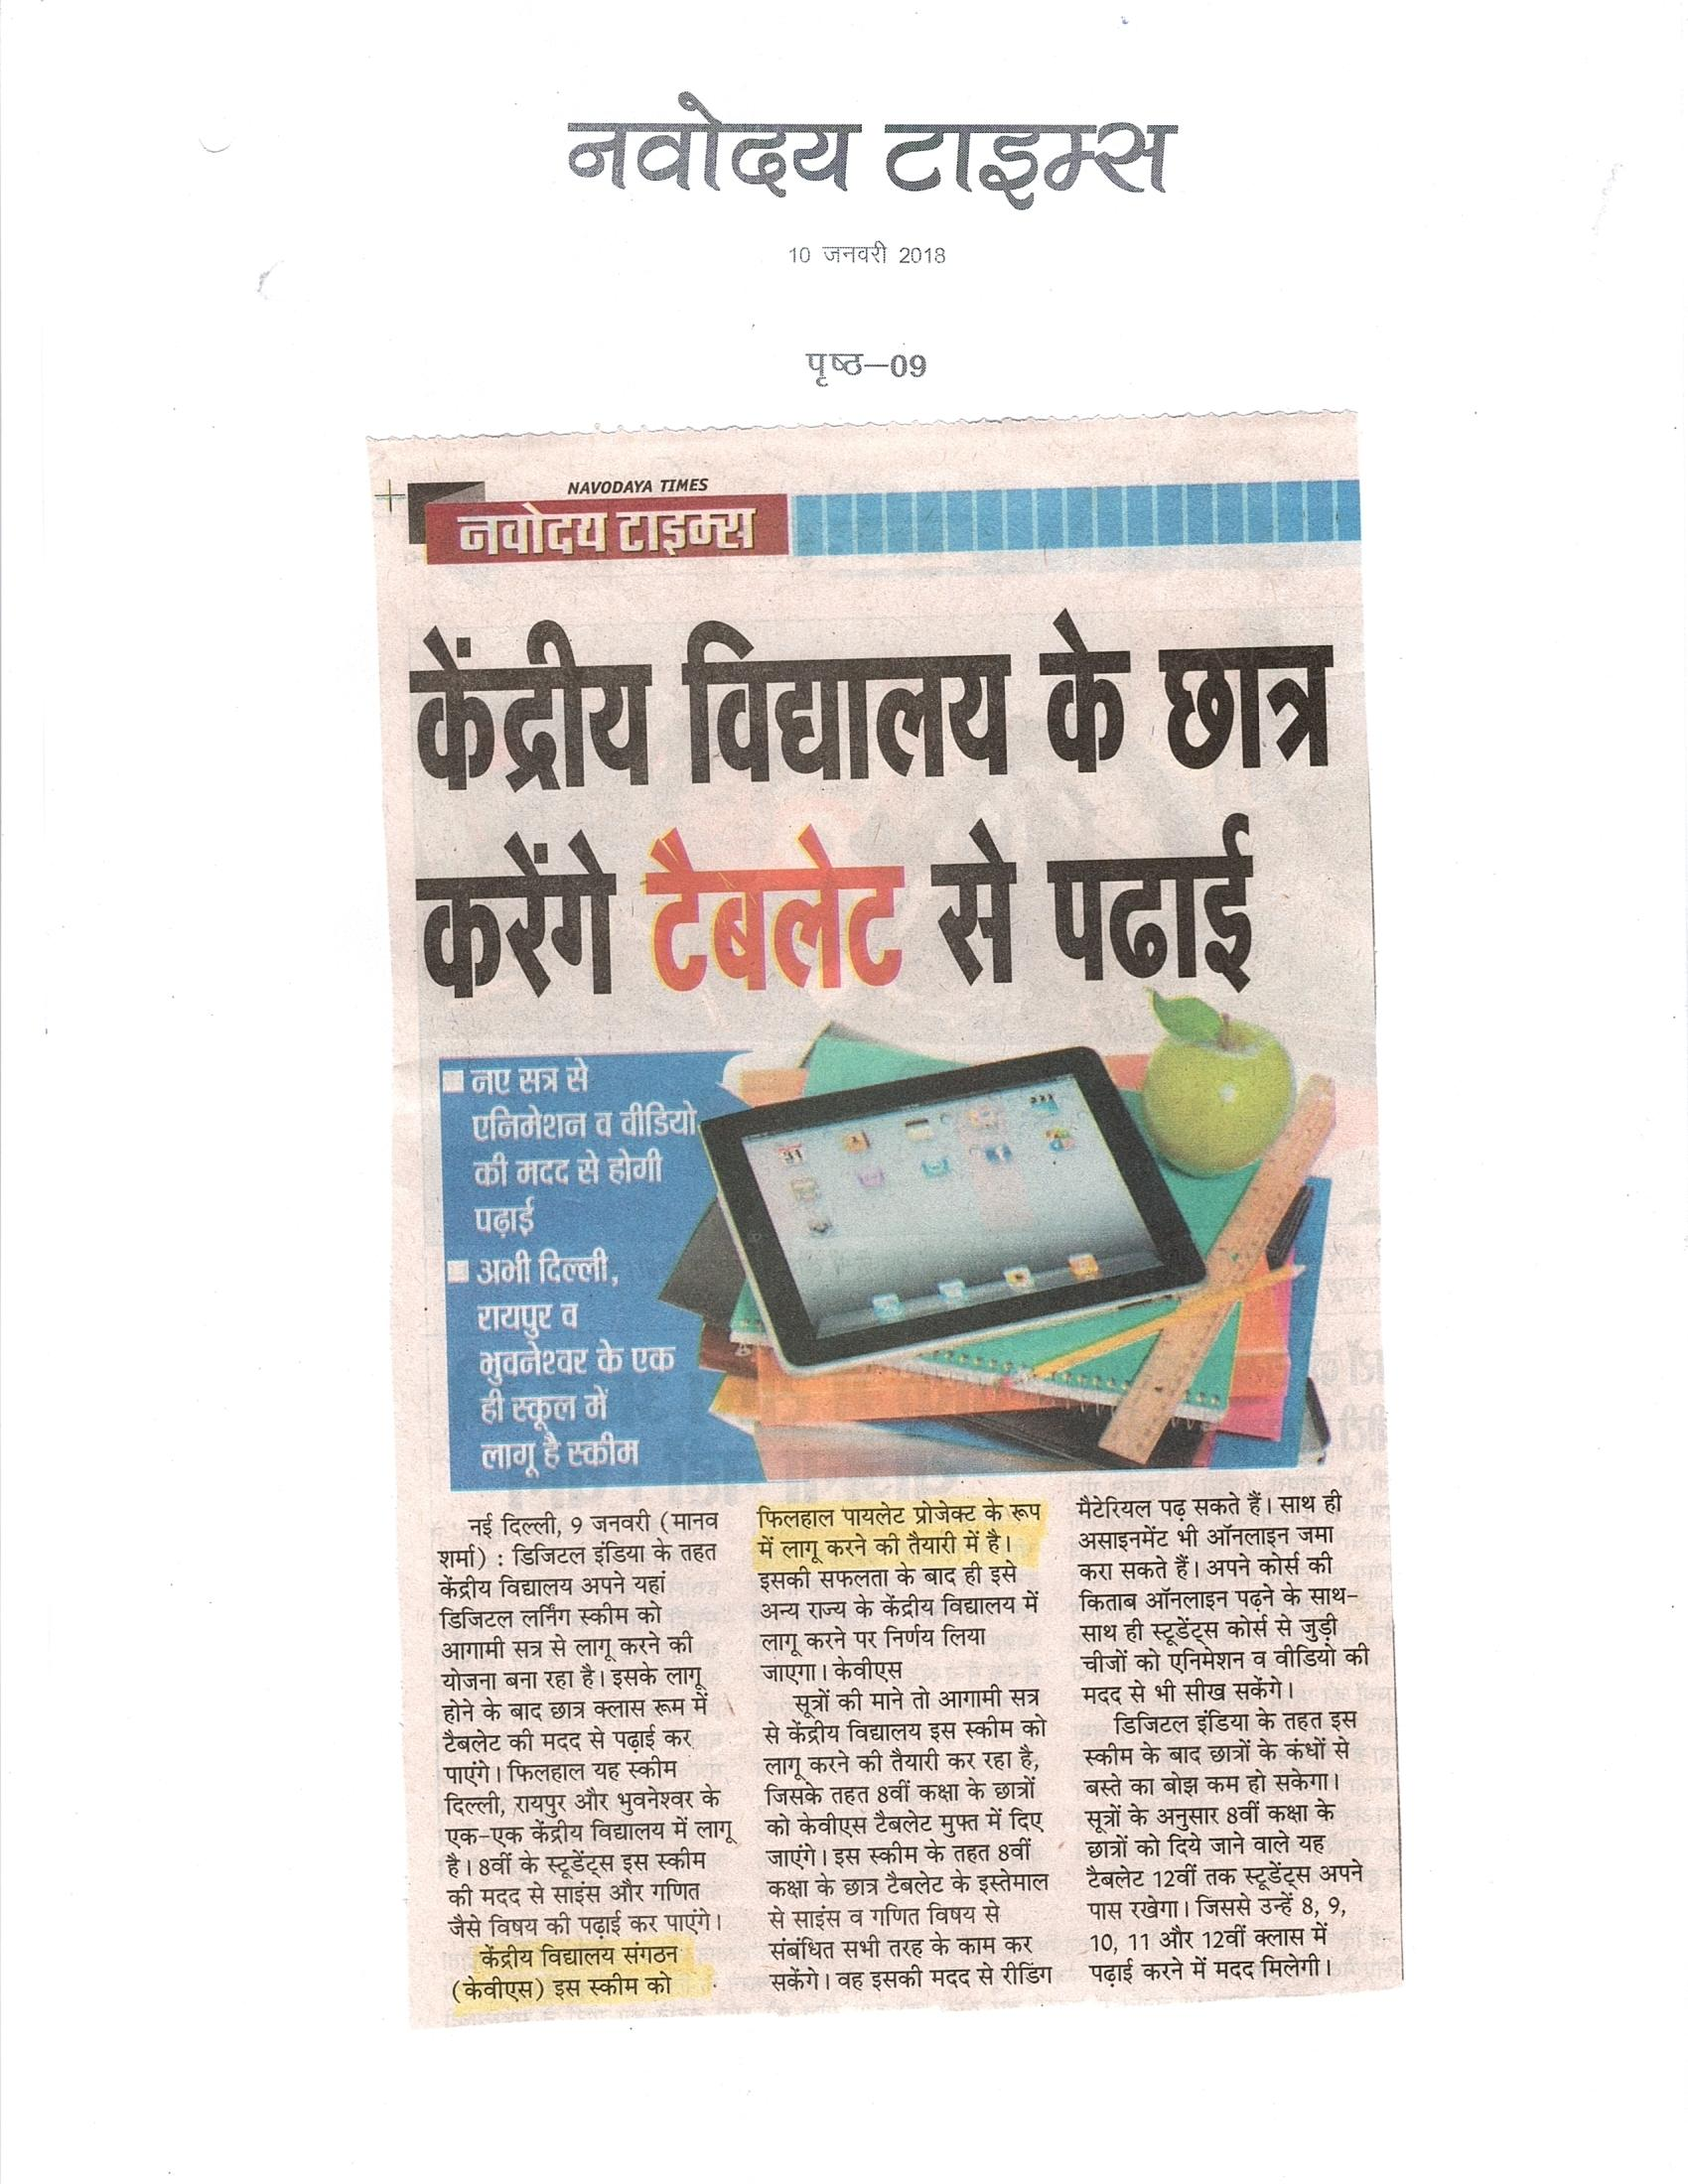 KV Students Will Study through Tablet